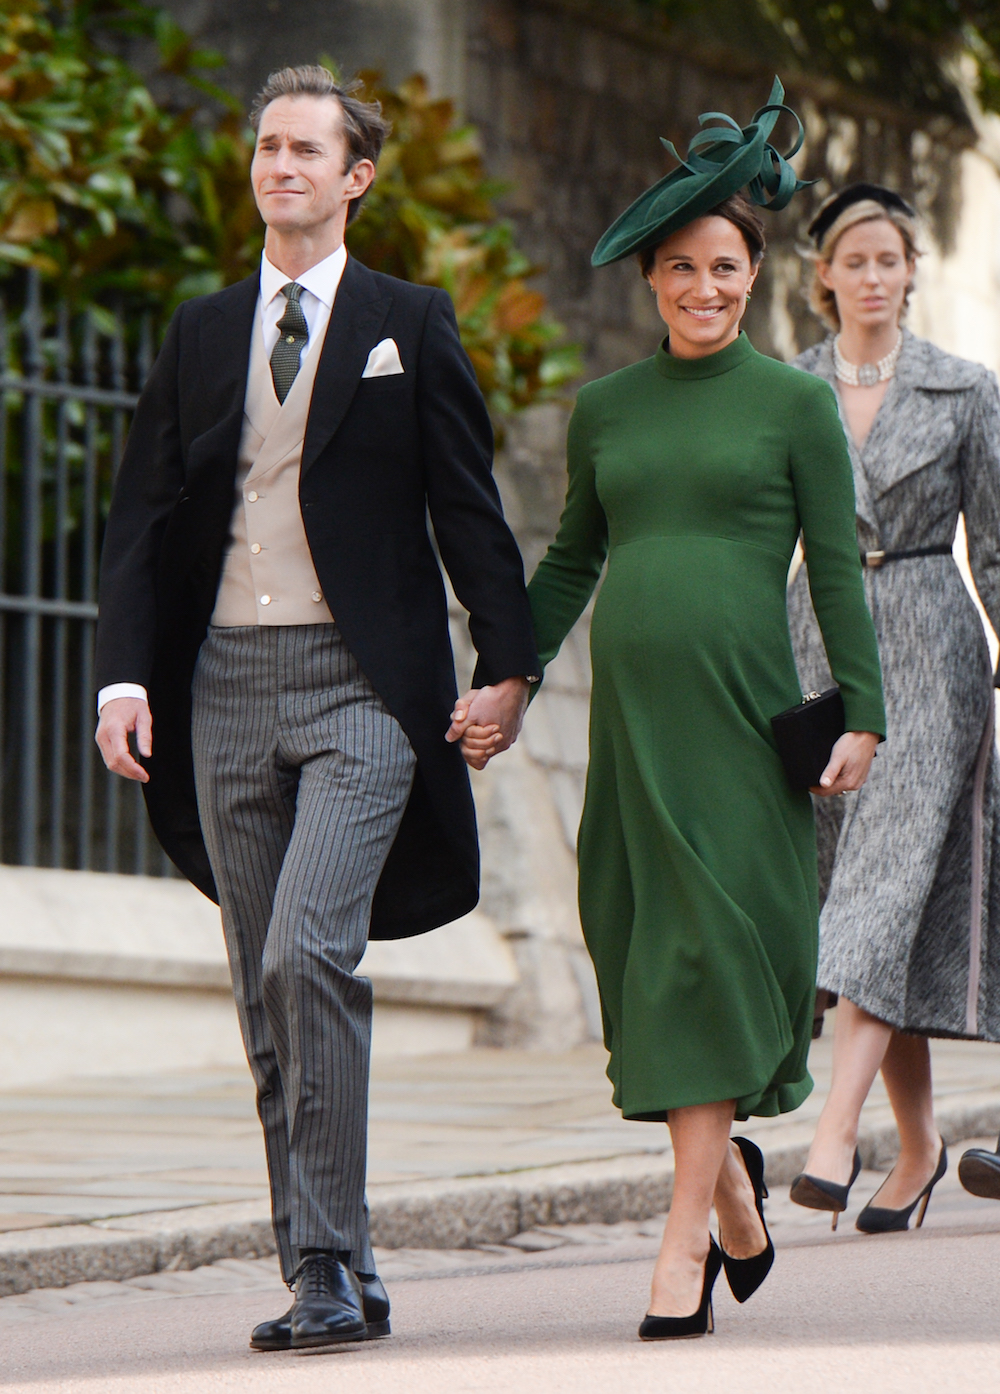 Kate Middleton's Sister Pippa Middleton With Husband James Matthews at Princess Eugenie's Wedding